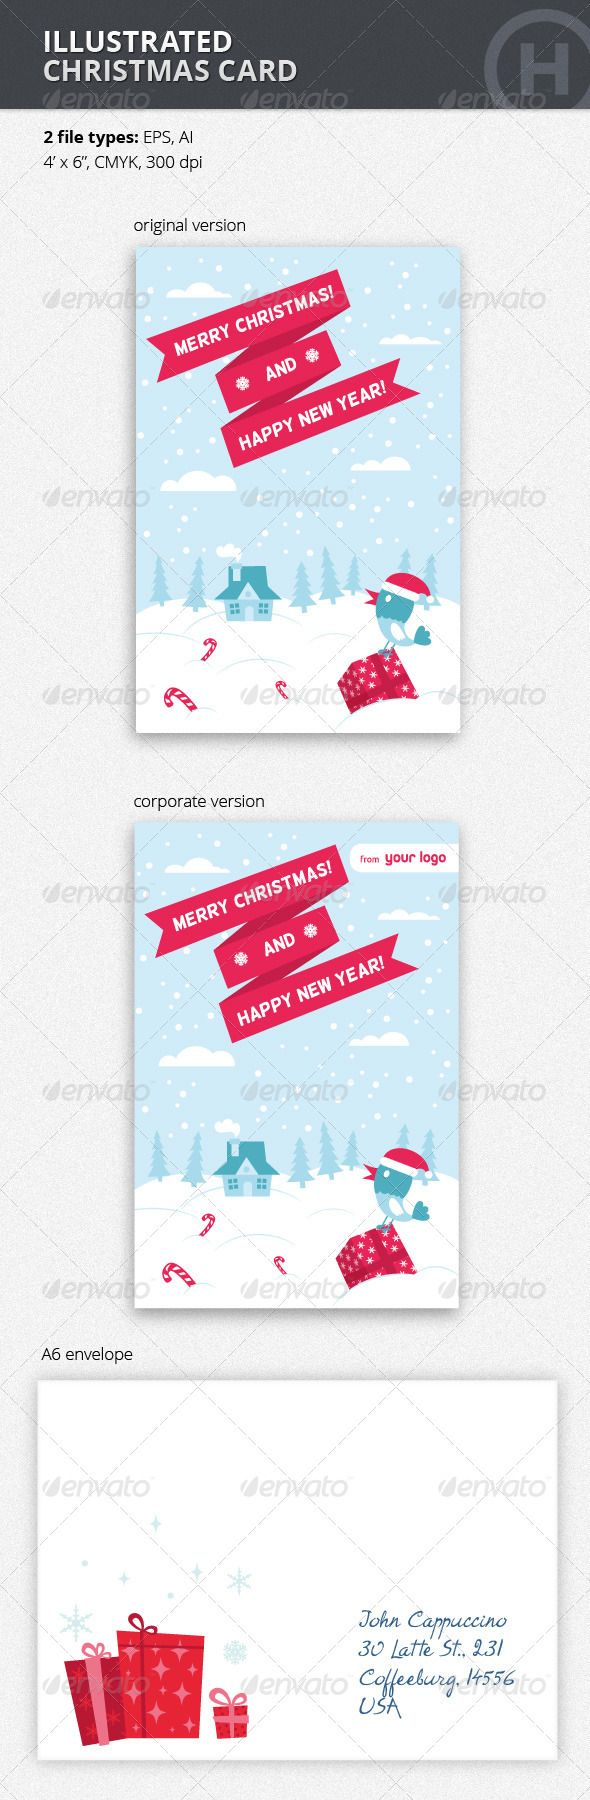 Illustrated Christmas Card with Bird | Template, Creative flyers and ...